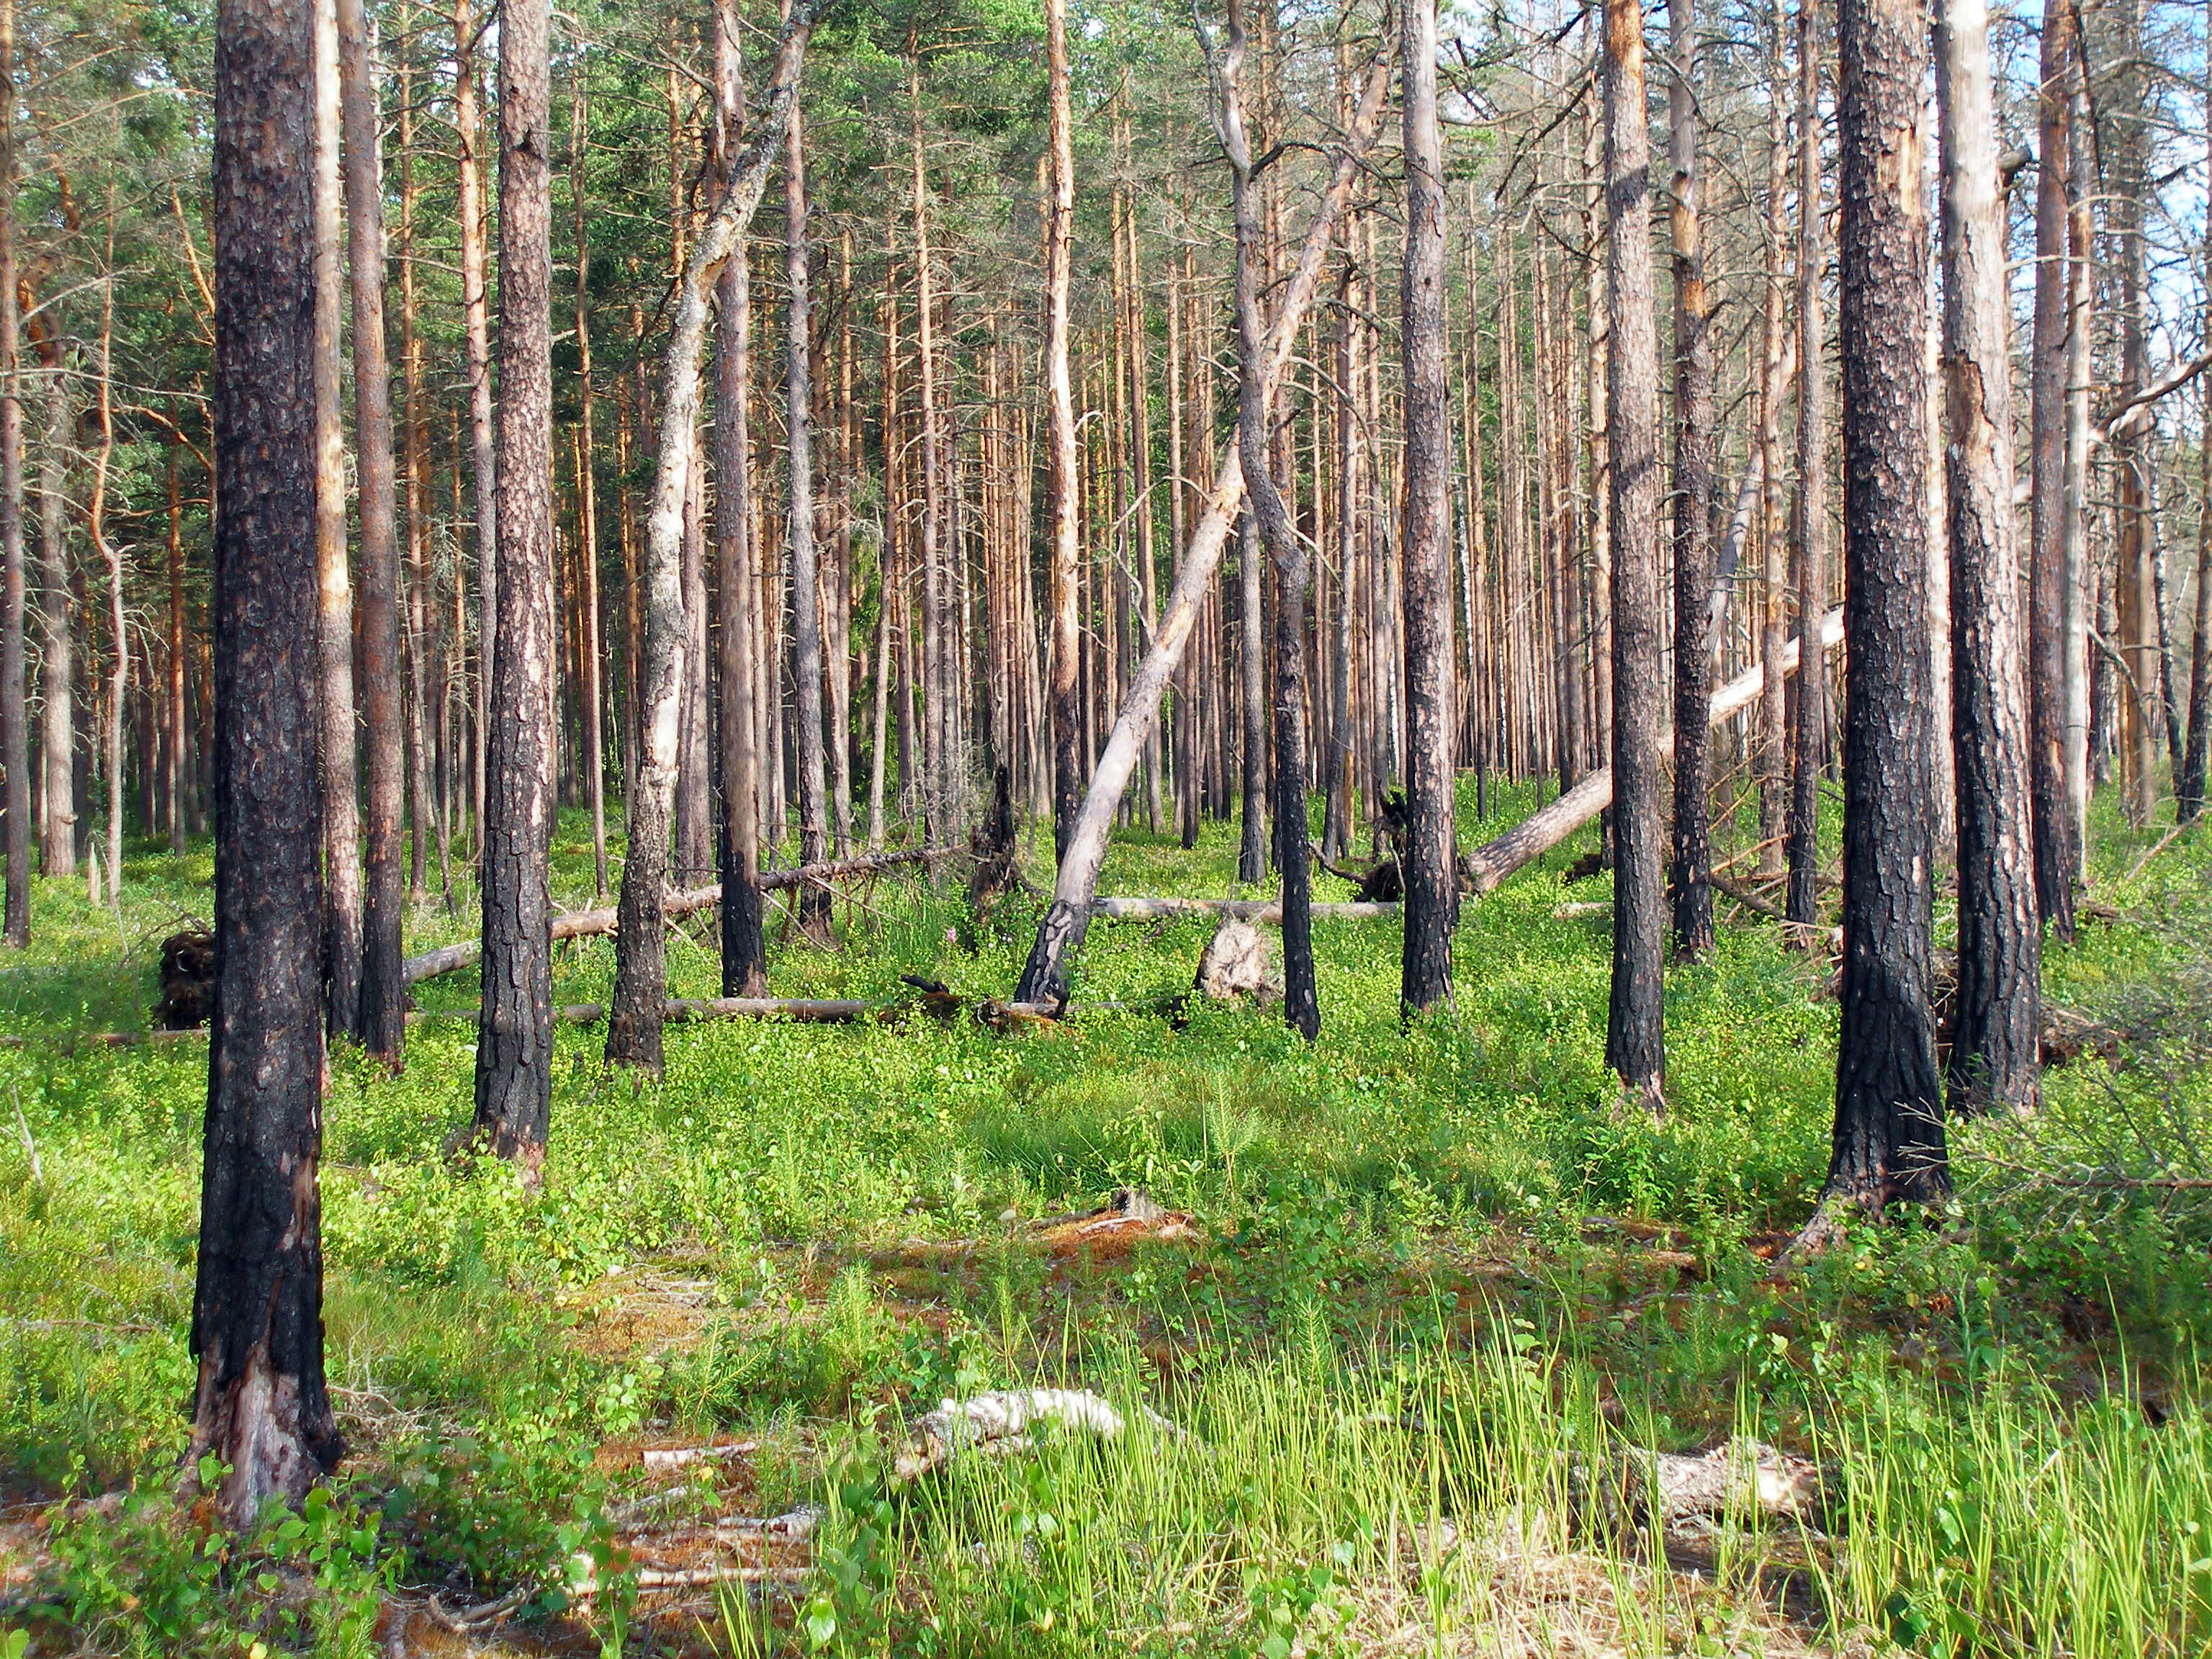 File:Boreal pine forest 4 years after fire, 2010-07.jpg ...